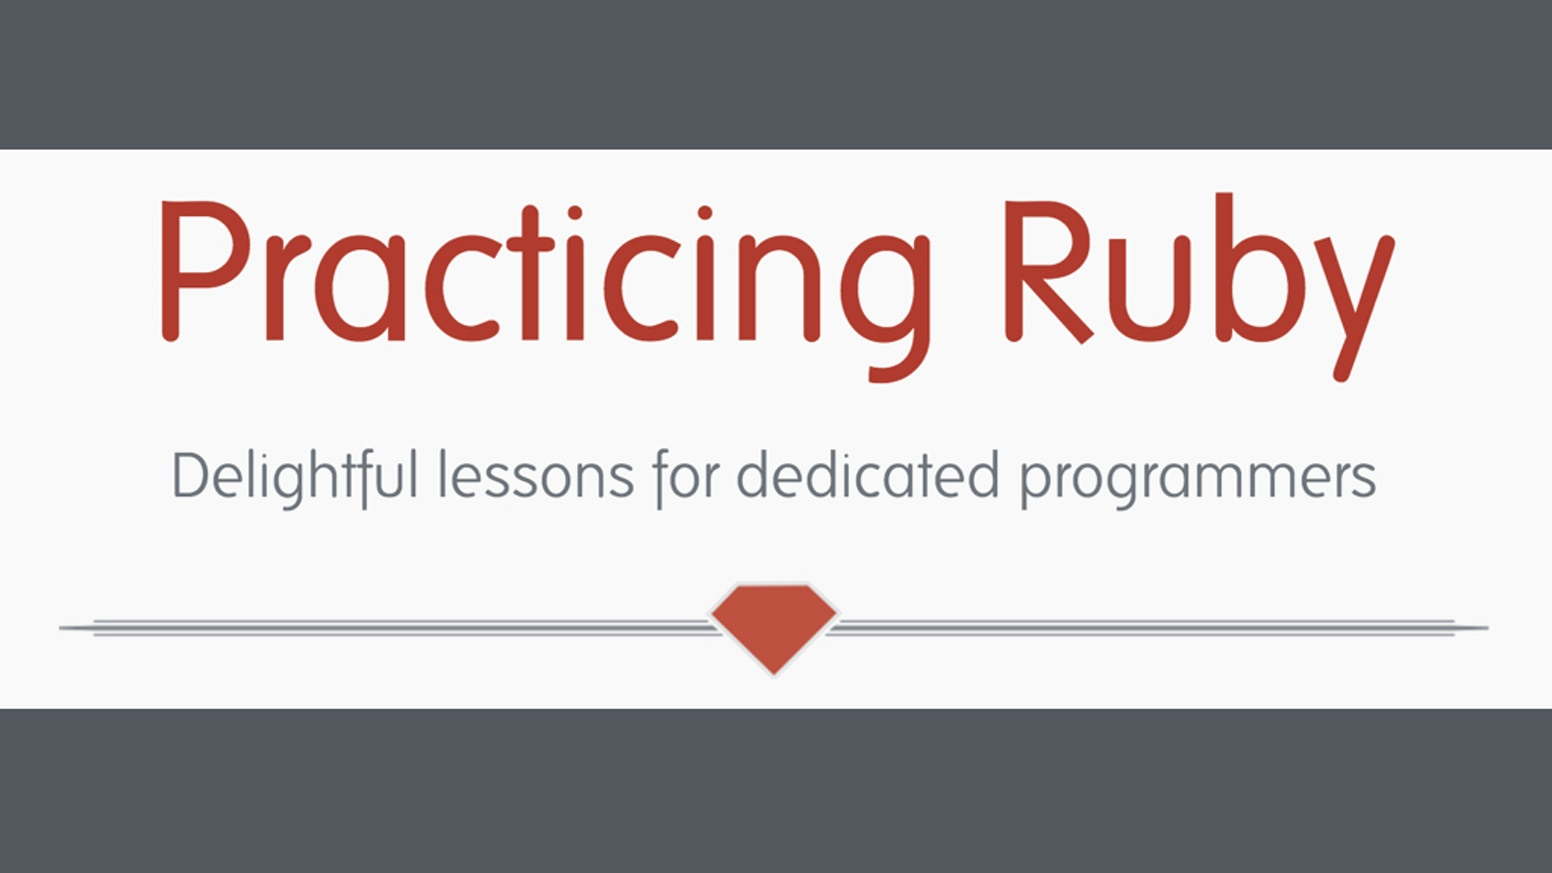 Help bring new voices to Practicing Ruby, so that they can educate and inspire developers everywhere.